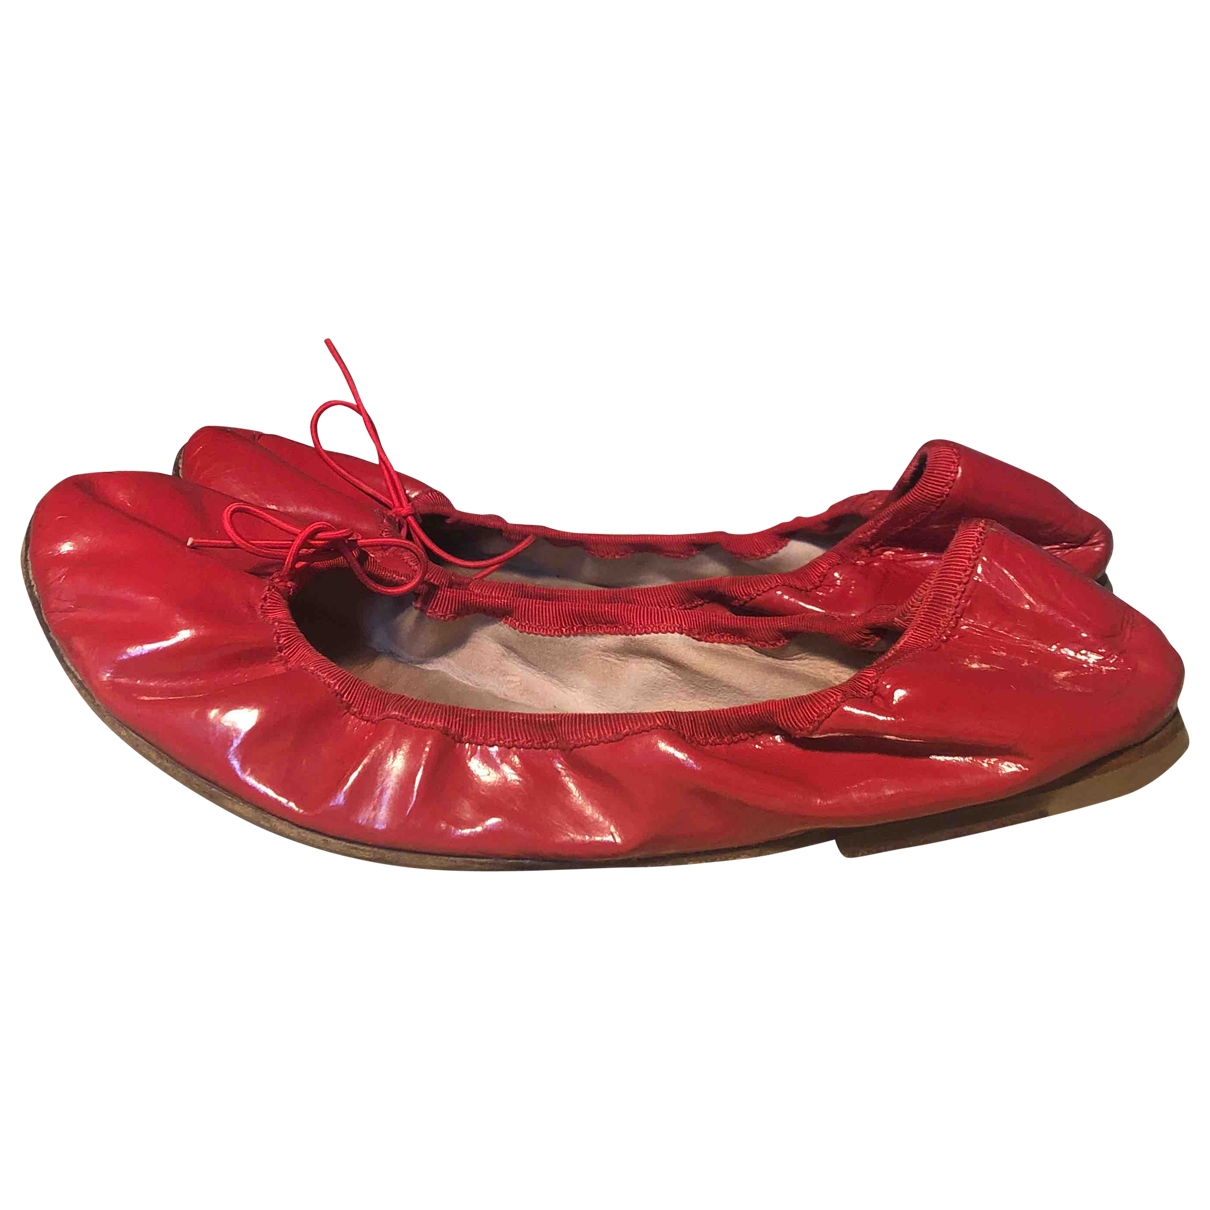 Bloch \N Red Patent leather Ballet flats for Women 39 EU